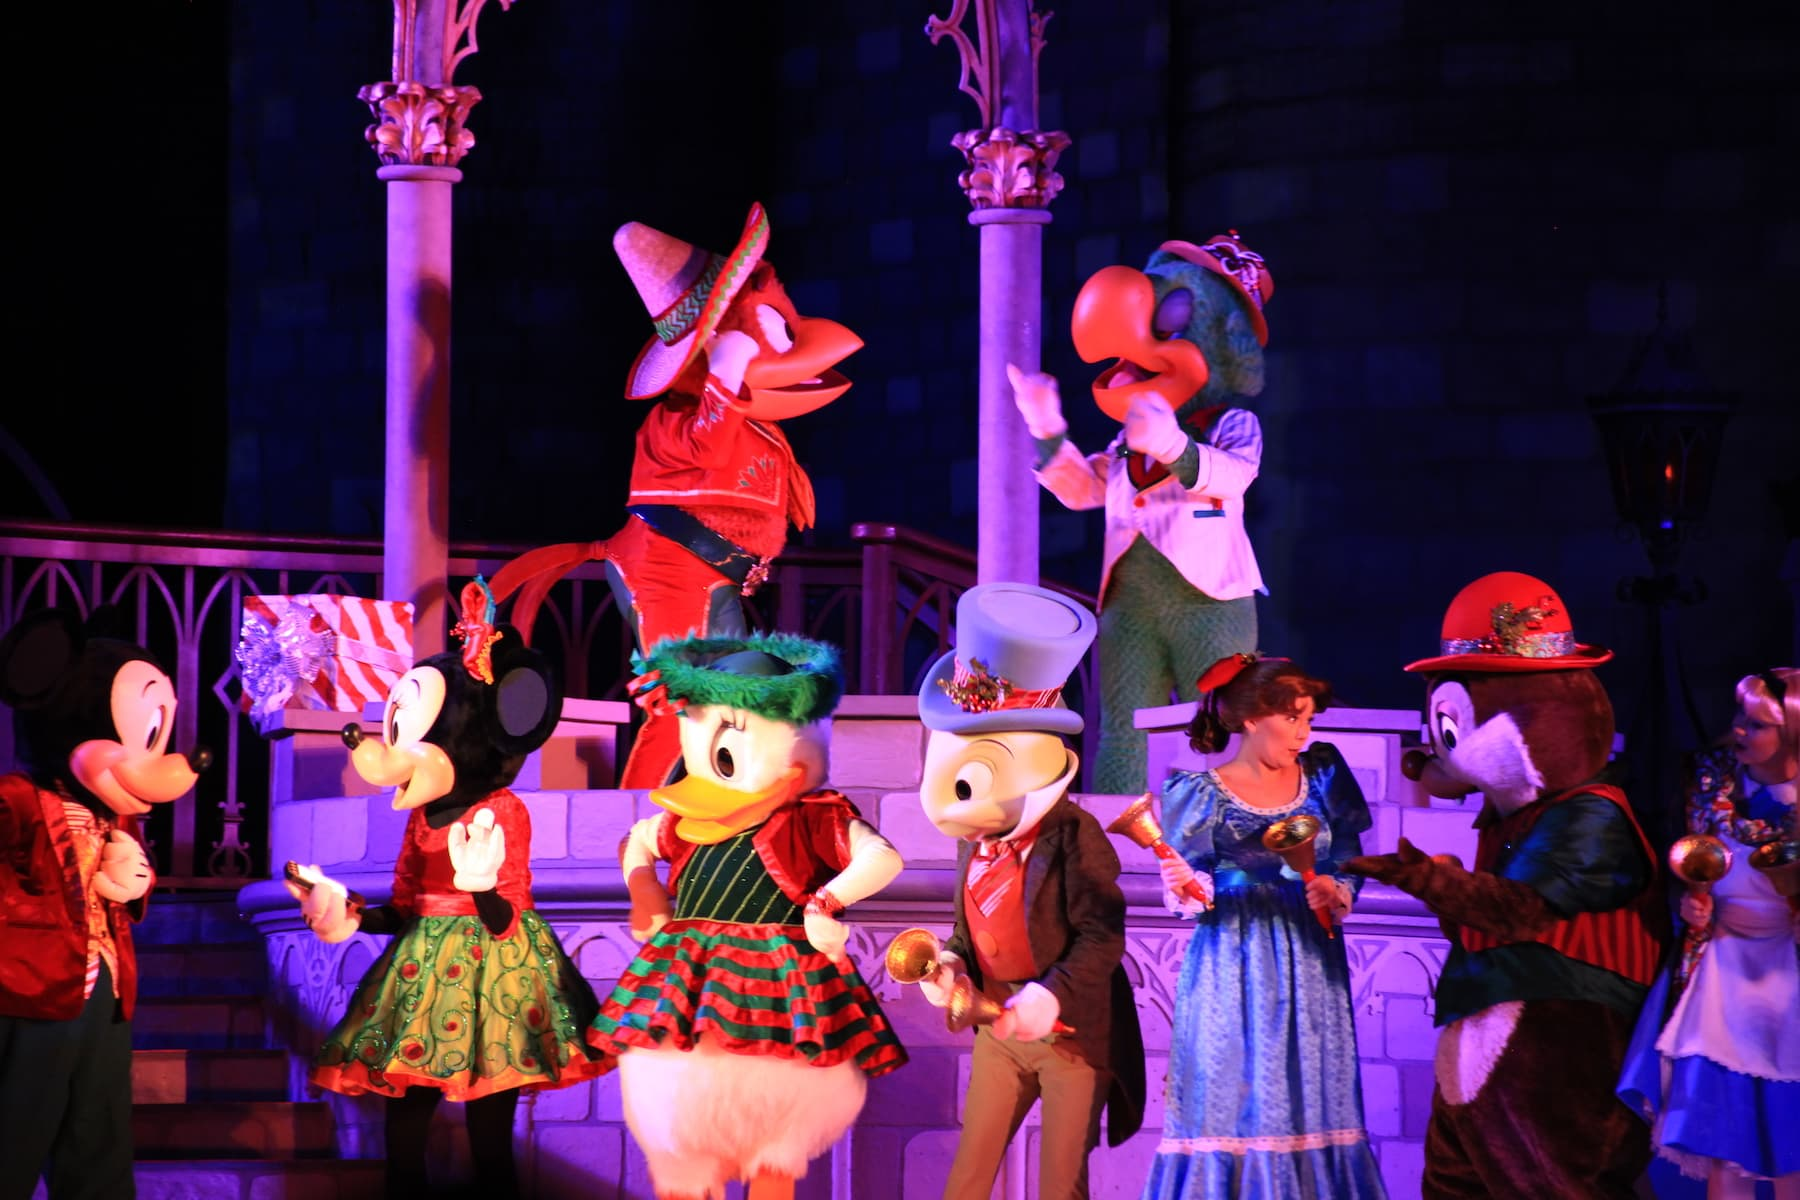 Disney Characters Three Caballeros Jiminy Cricket Mickey's Very Merry Christmas Party Magic Kingdom